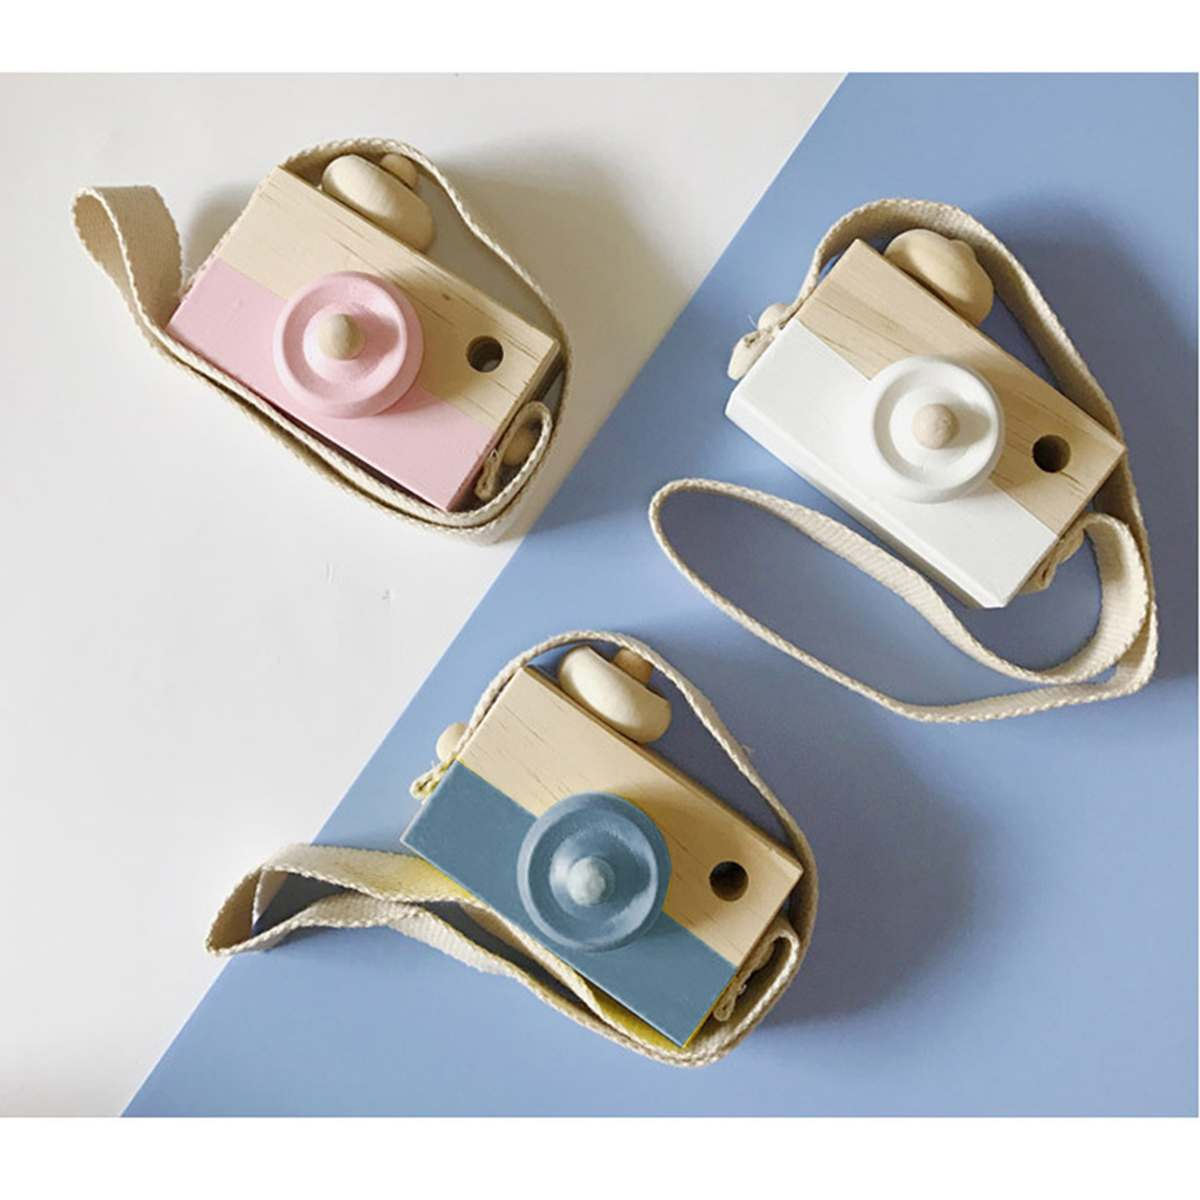 Wooden Camera Cute Camera Toys Kids Hanging Camera Photo Prop Decoration For Children Birthday Christmas Gifts Toy